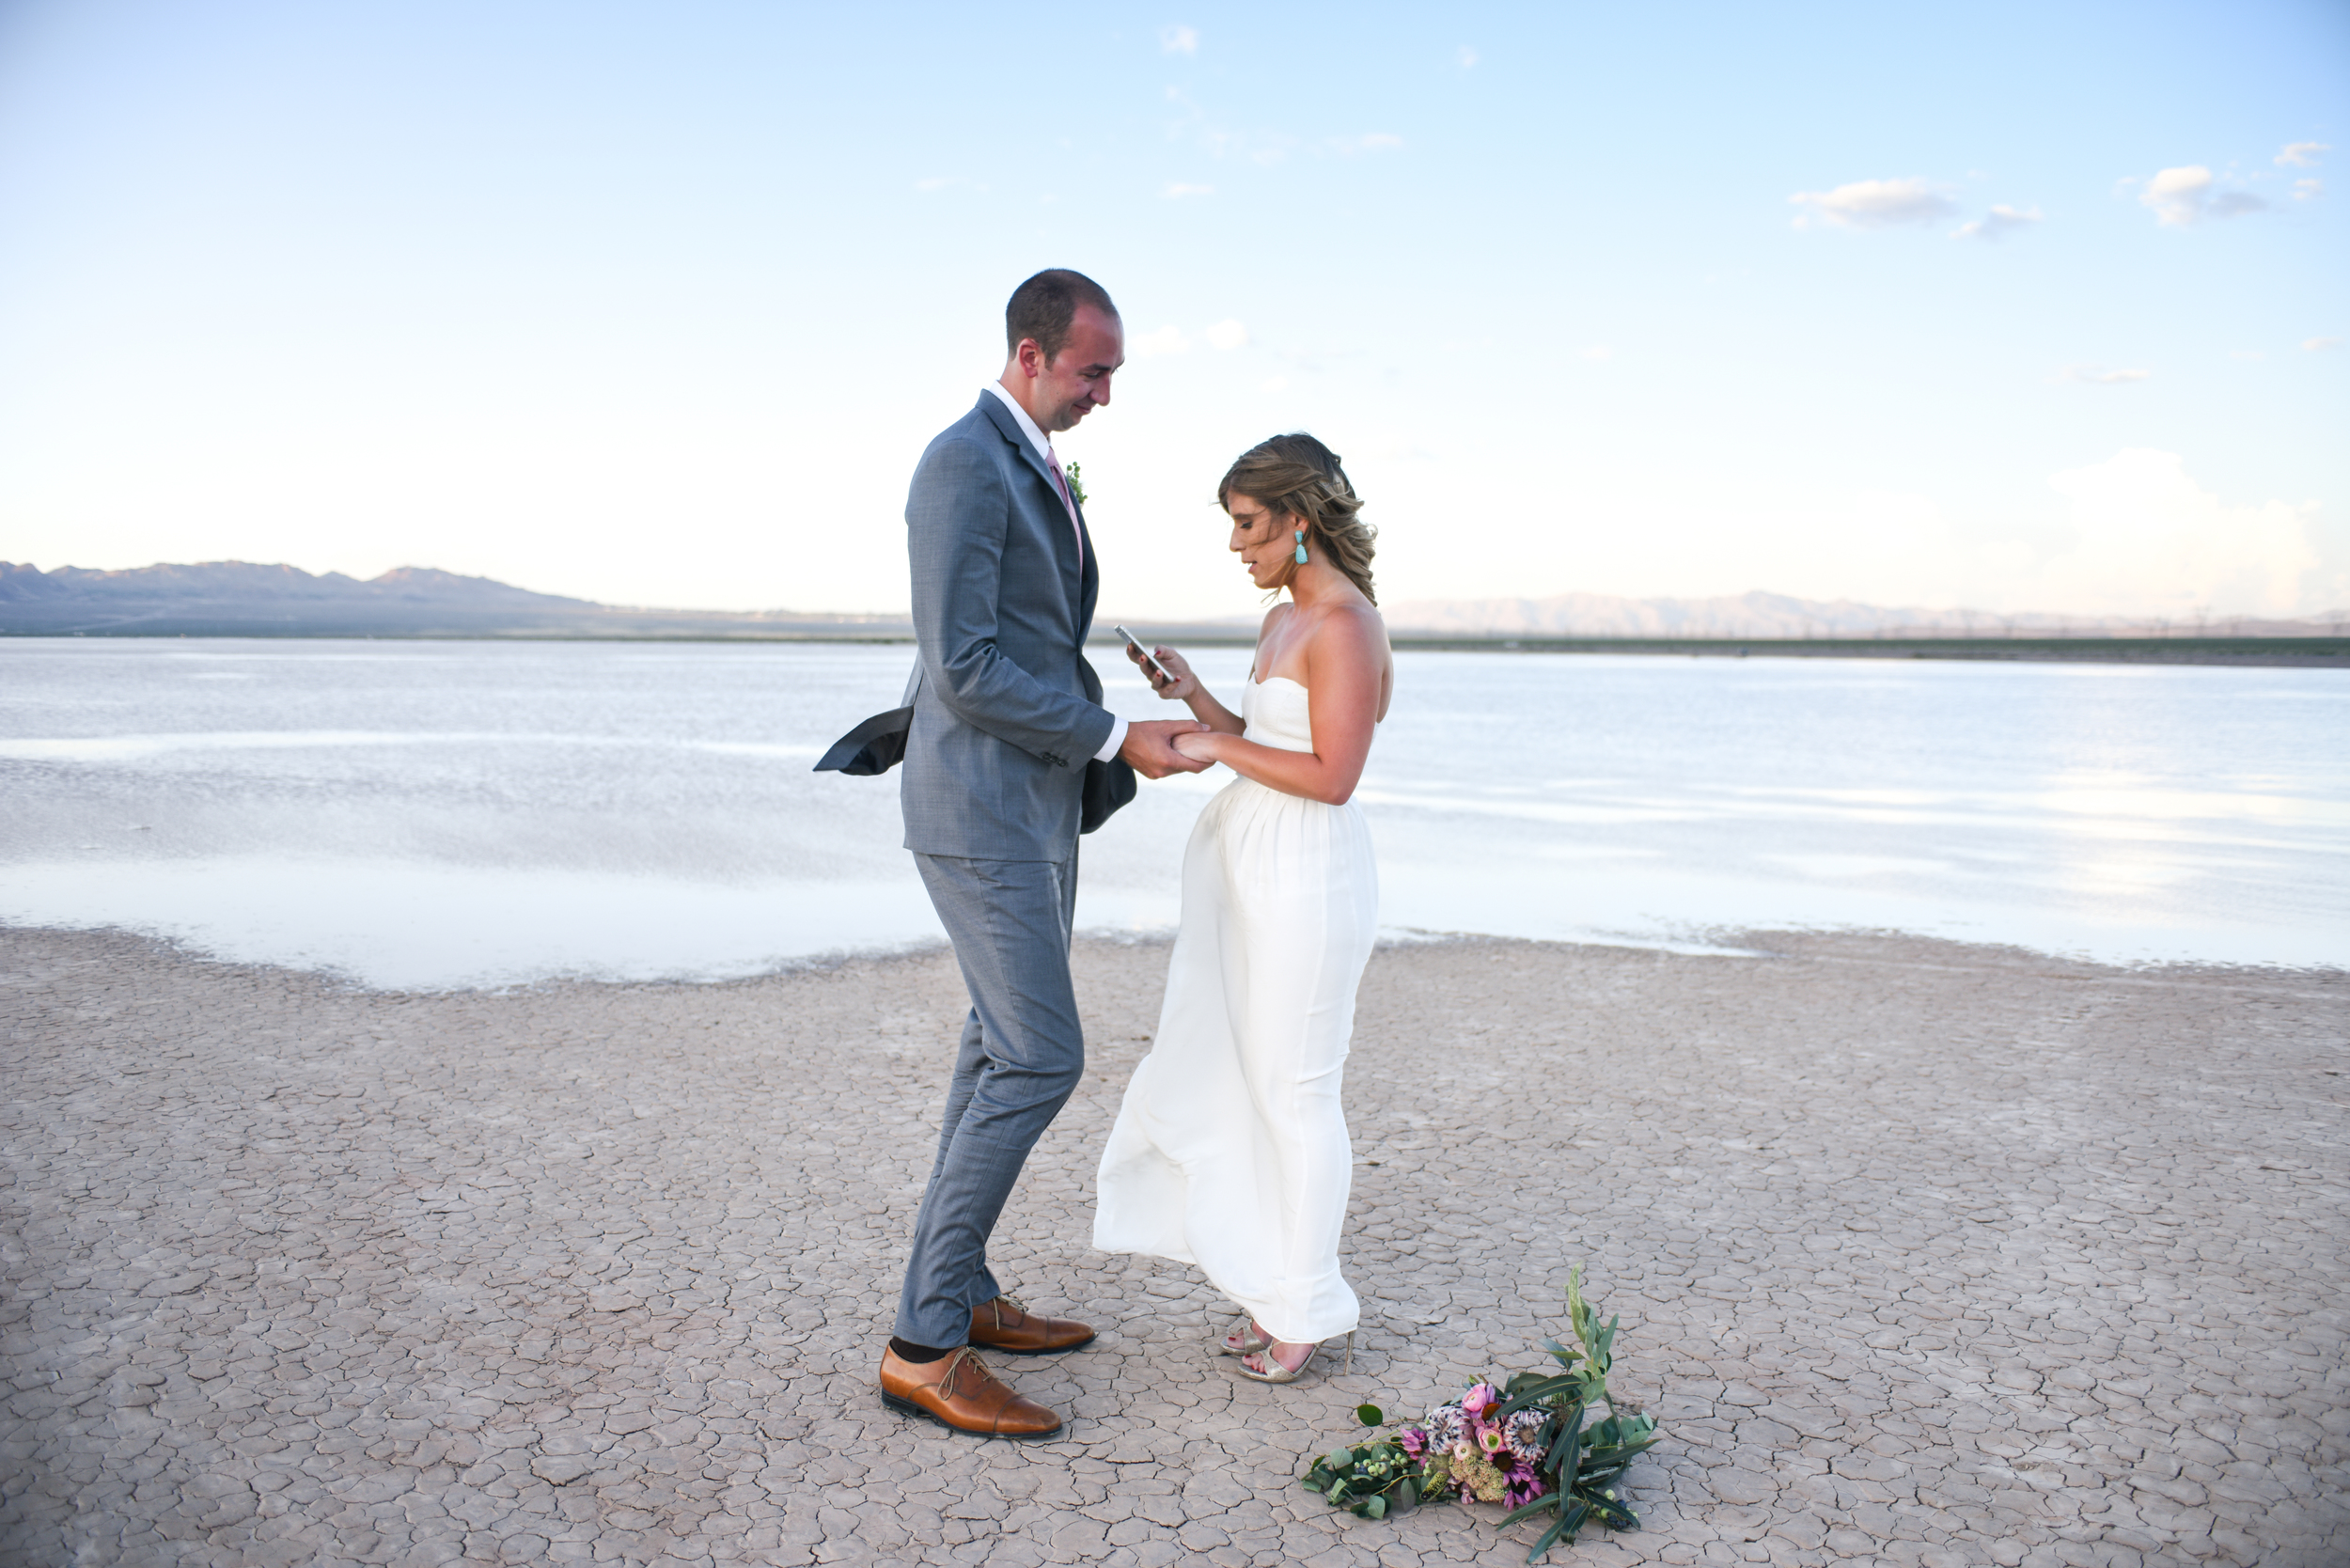 dry lake bed wedding, desert wedding, pop up wedding, elopement, las vegas elopement, desert elopement, flora pop elopement, ashley marie myers, lifestyle photography, lifestyle wedding, surprise wedding, surprise elopement, dry lake beds, las vegas,